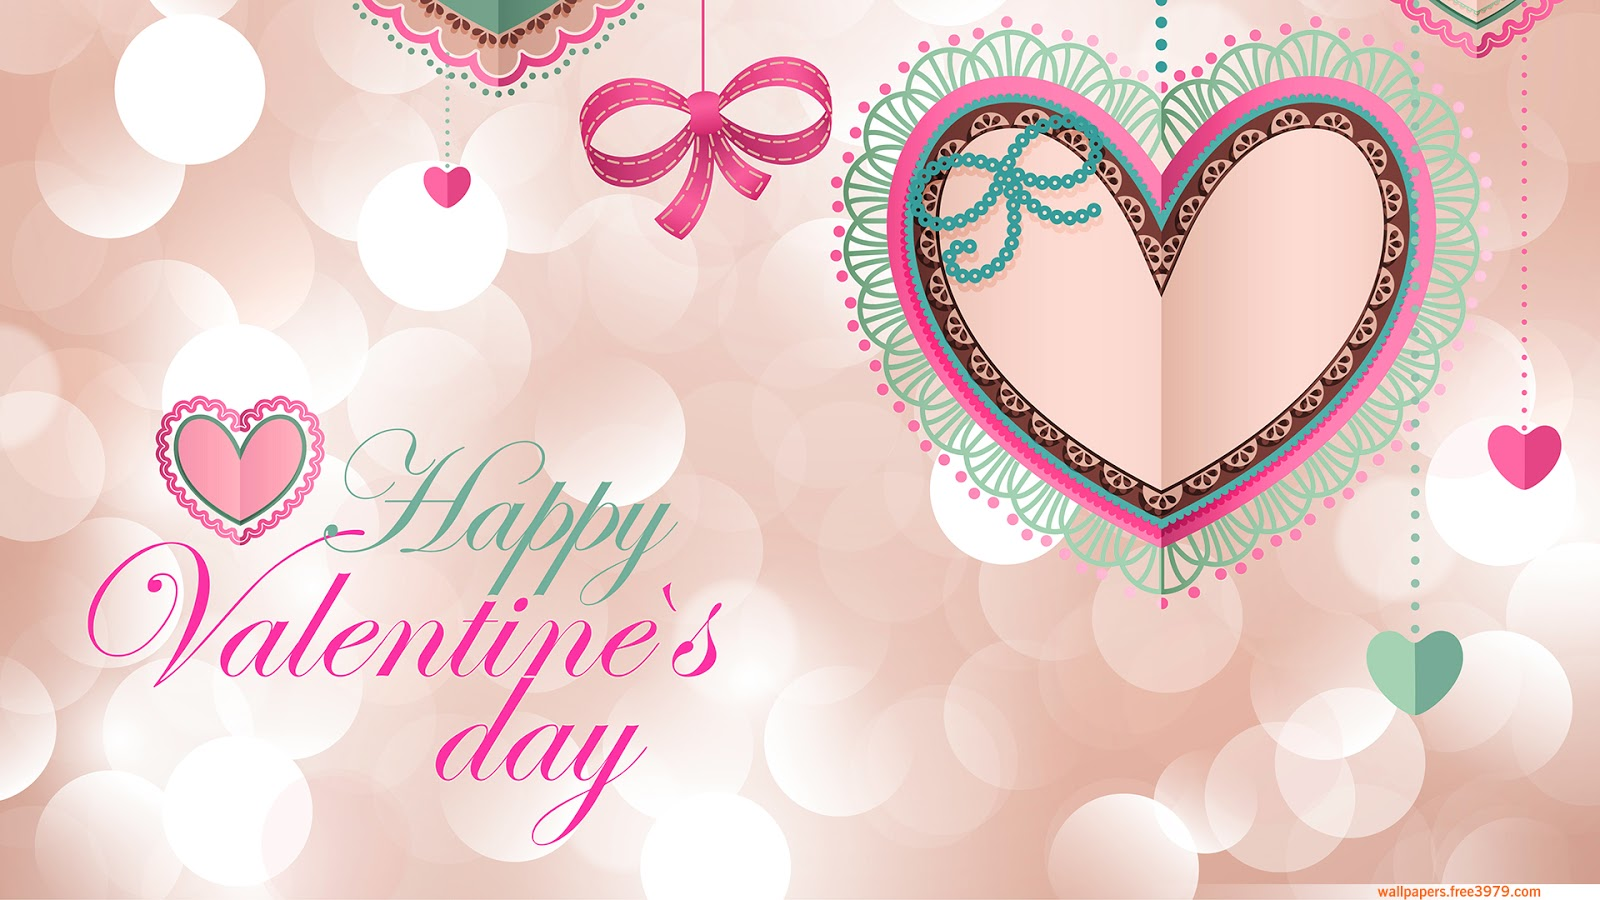 wallpapers-wallpaper: love heart happy valentine's day 14/02